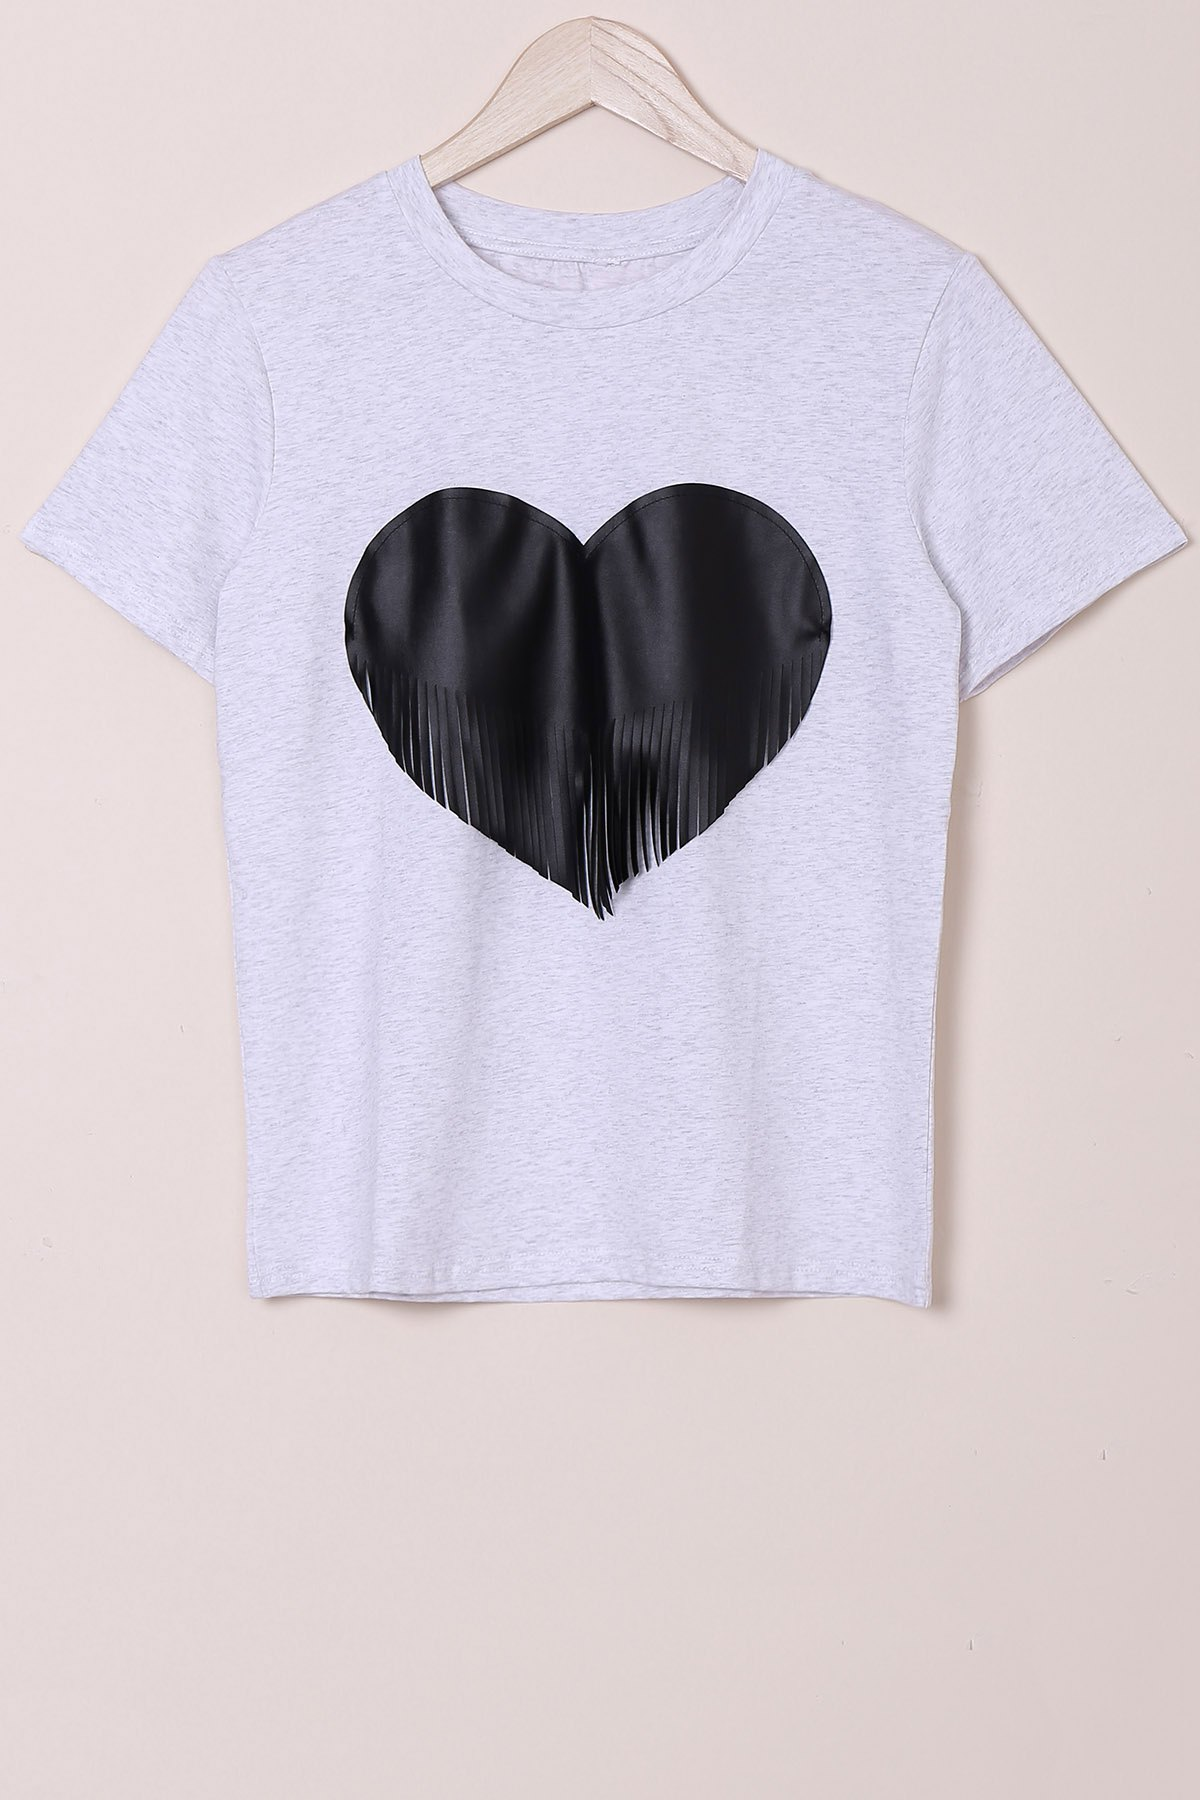 Casual Round Collar Heat Shape Printed Tassel Design T-Shirt For Women - M LIGHT GRAY